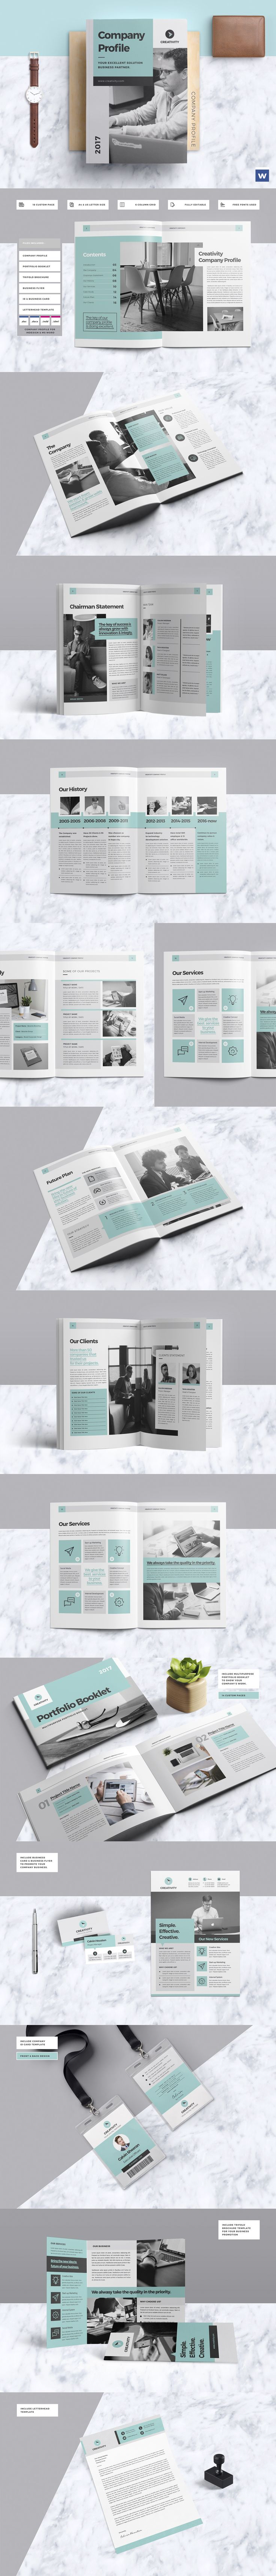 Clean U0026 Professional Company Profile With Include Portfolio Booklet,  Trifold Brochure, ...  Best Company Profile Format